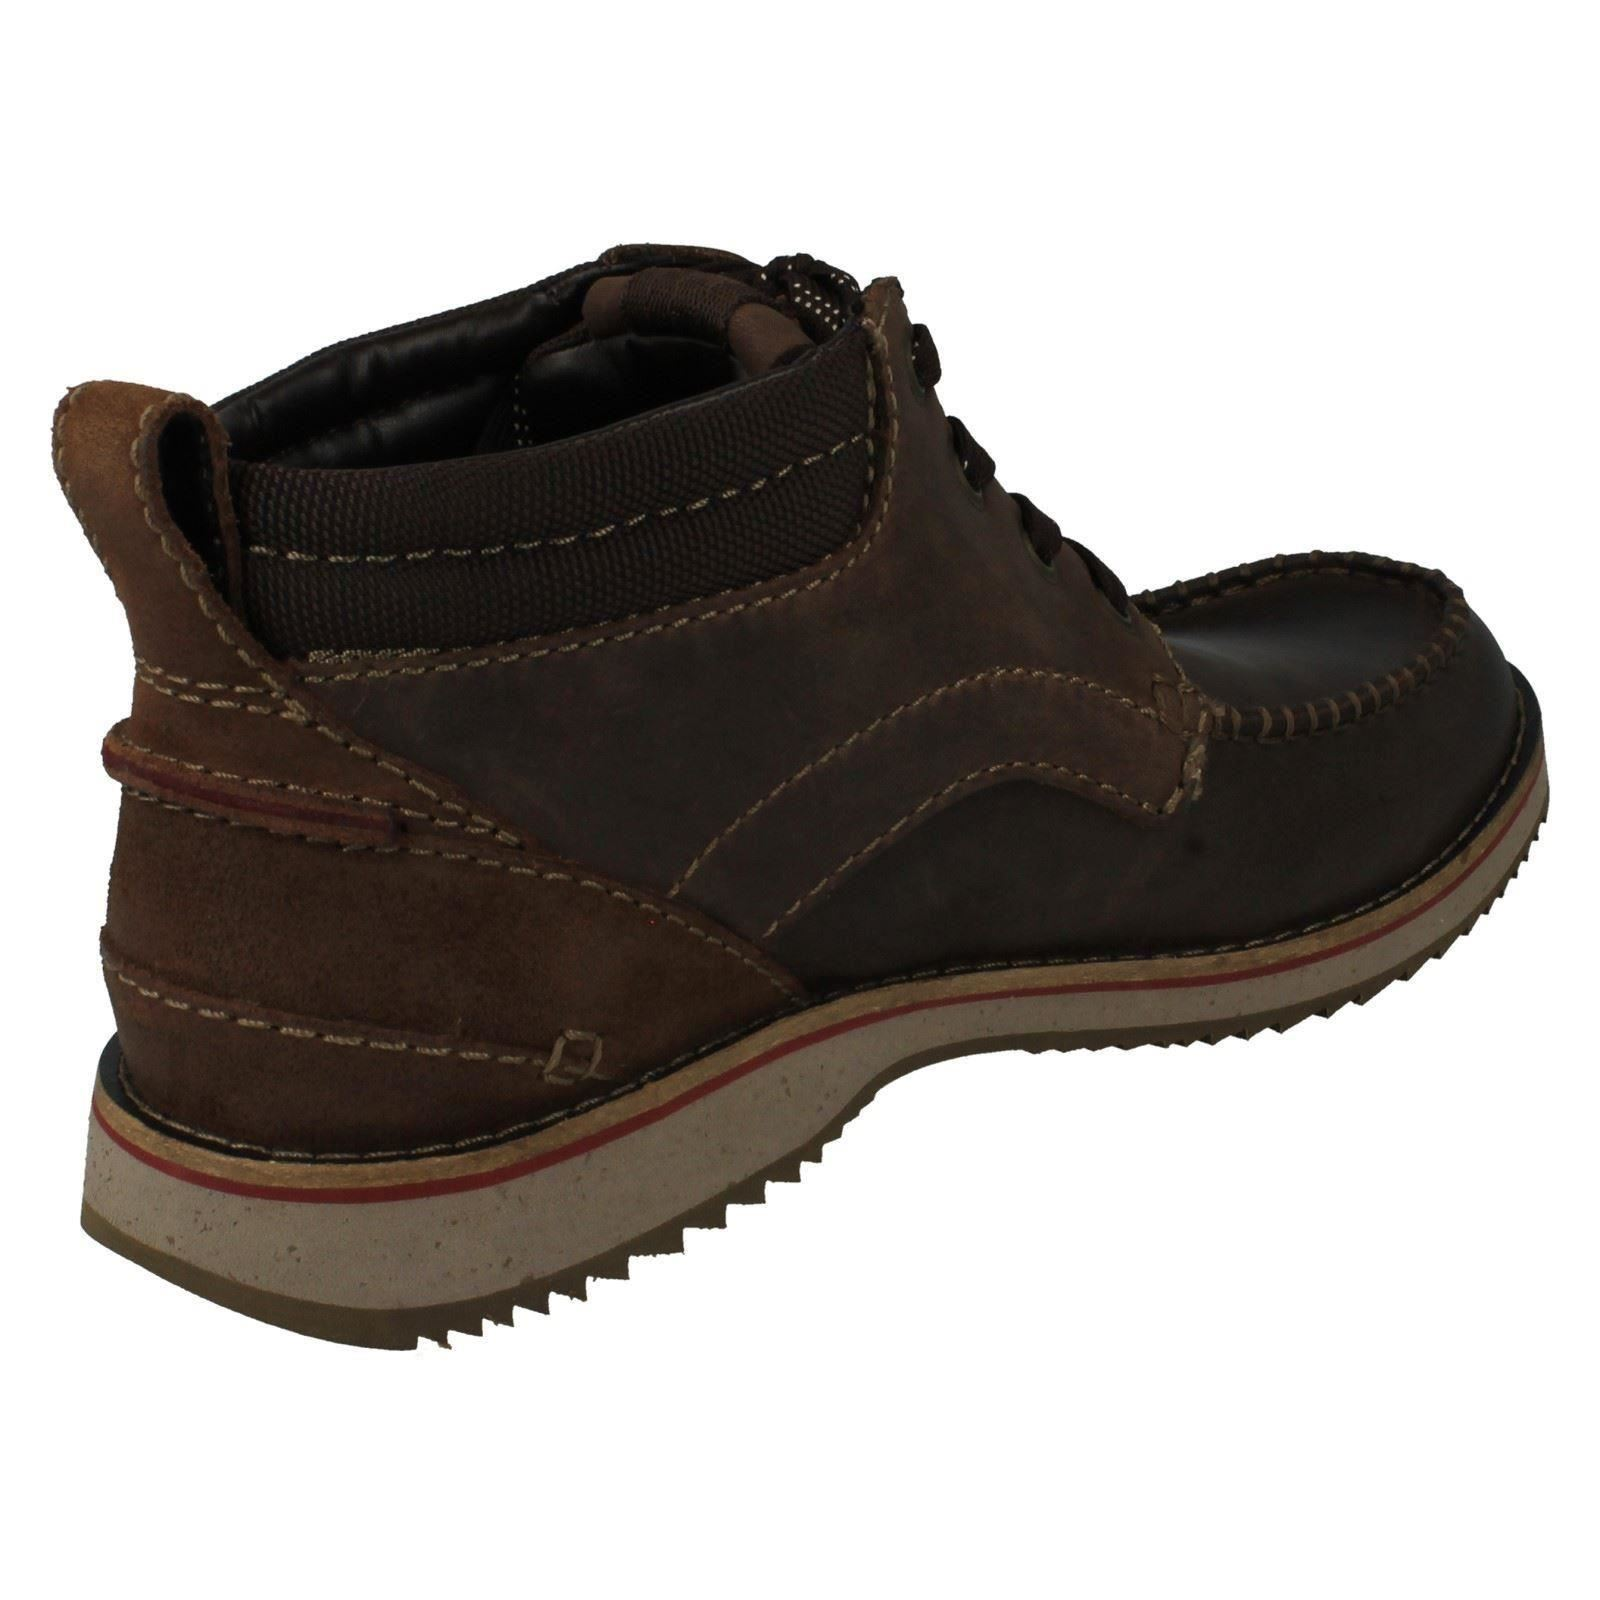 Men's Clarks Casual Boots Style - Mahale Mid